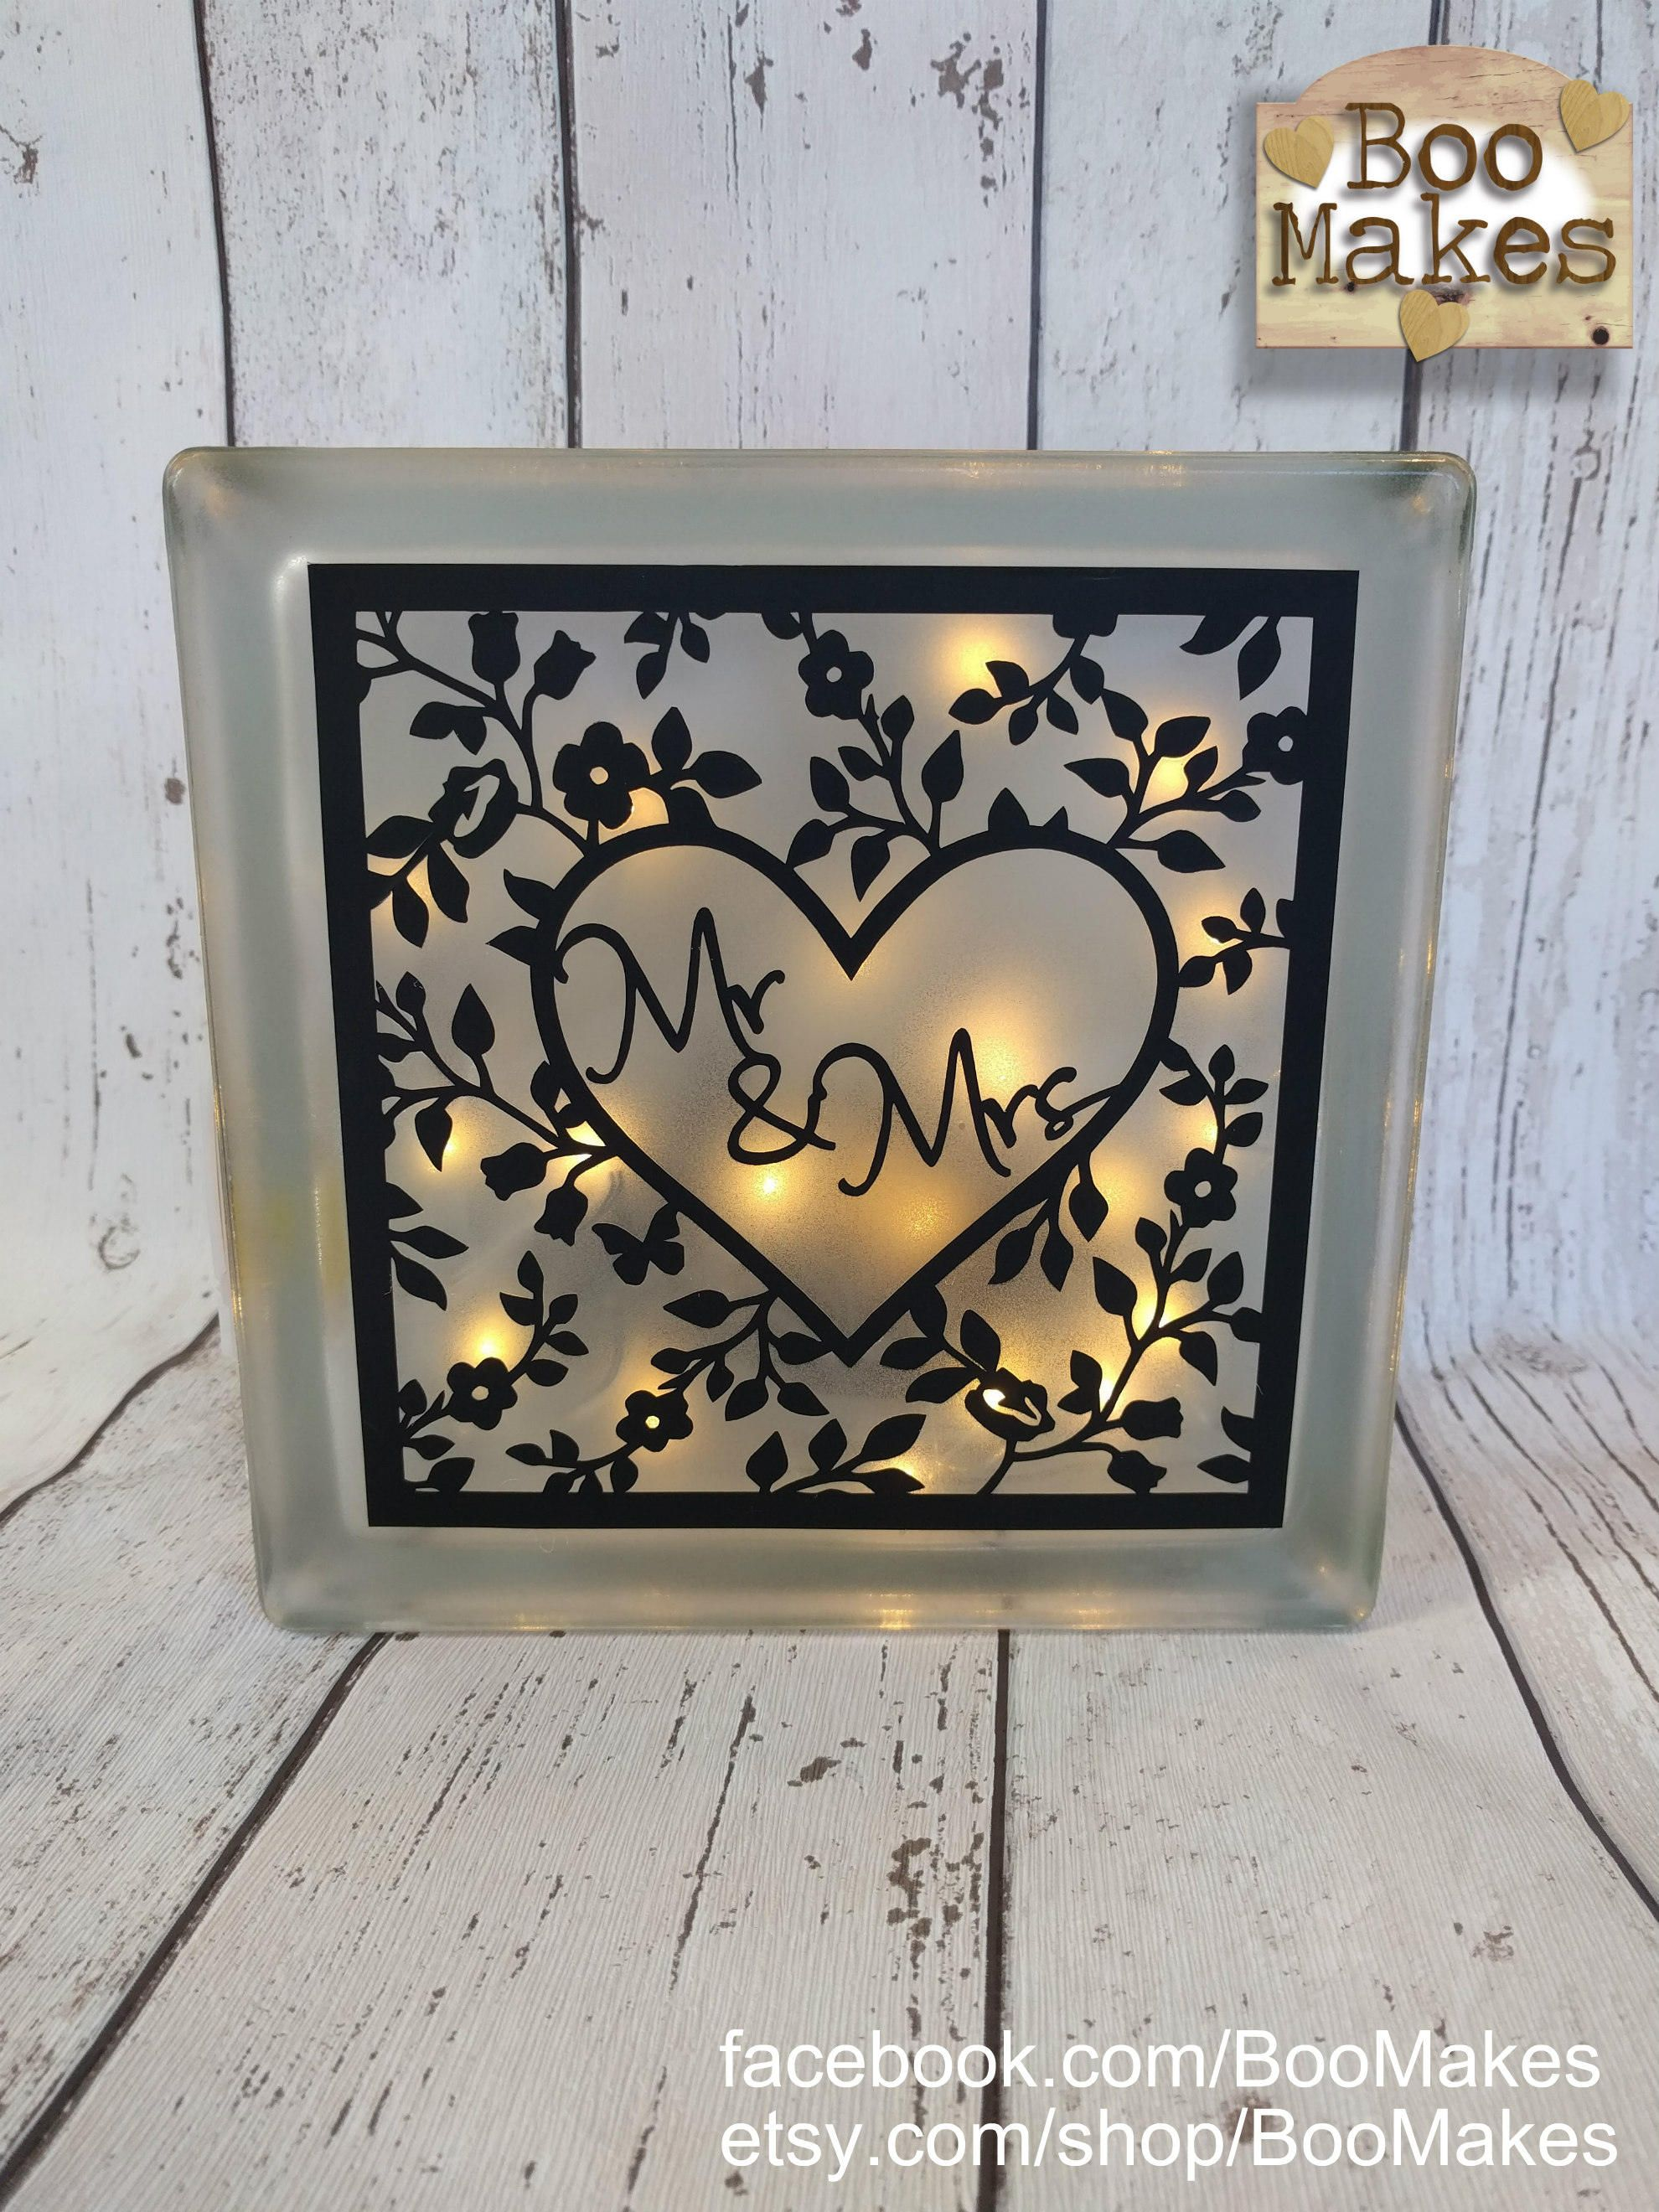 Mr Mrs Gl Light Block Decoration Perfect Wedding Or Anniversary Present Idea Gift Unusual By Boomakes On Etsy